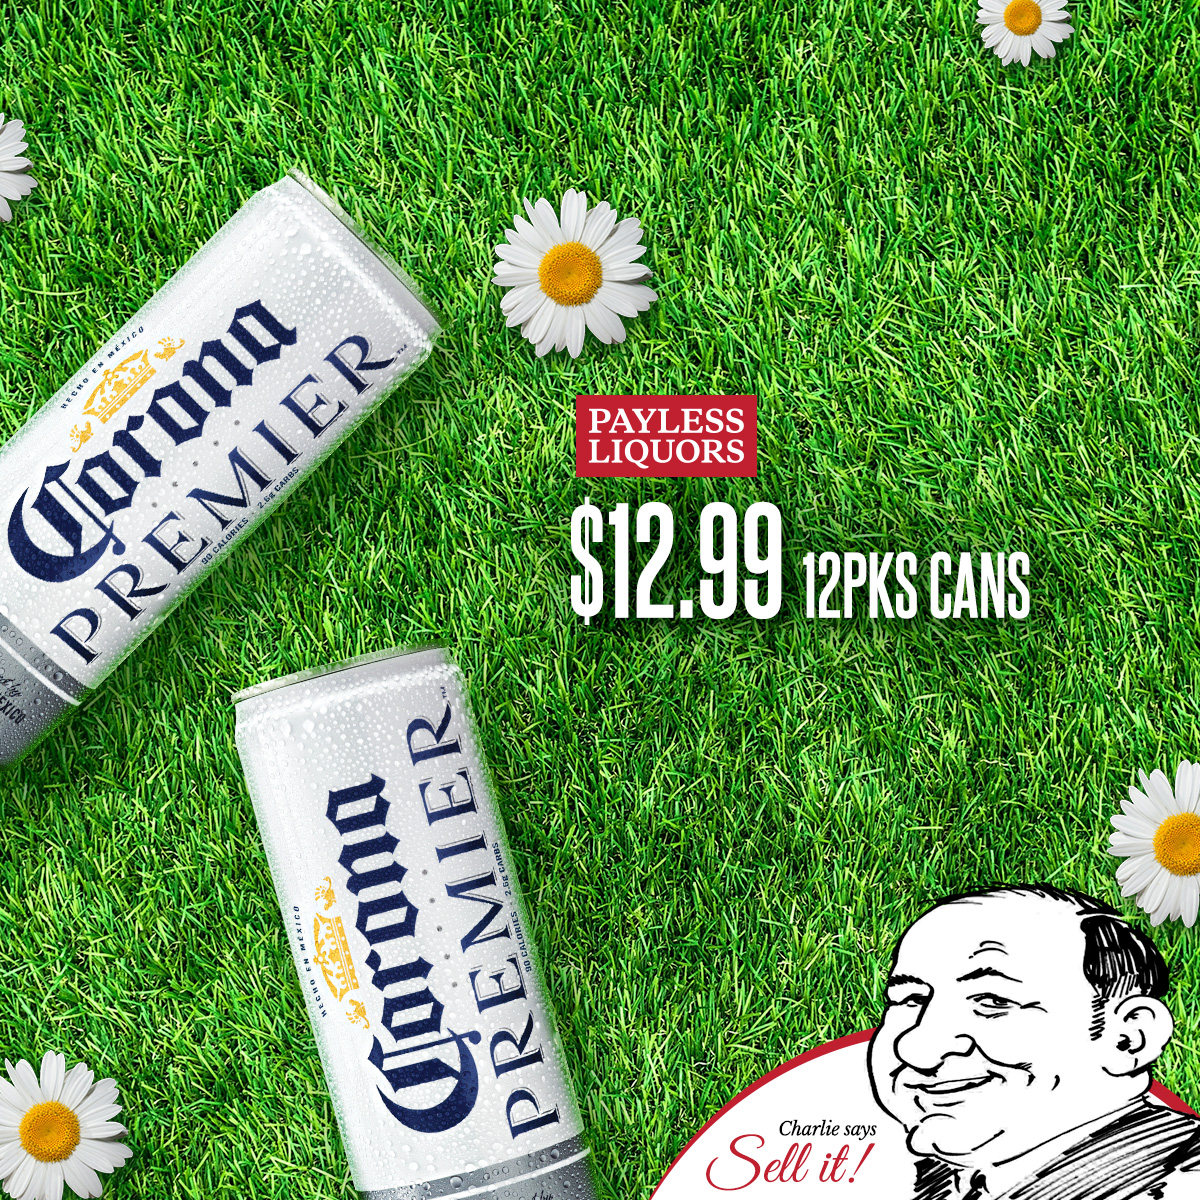 Corona Premier 12-Pack Cans